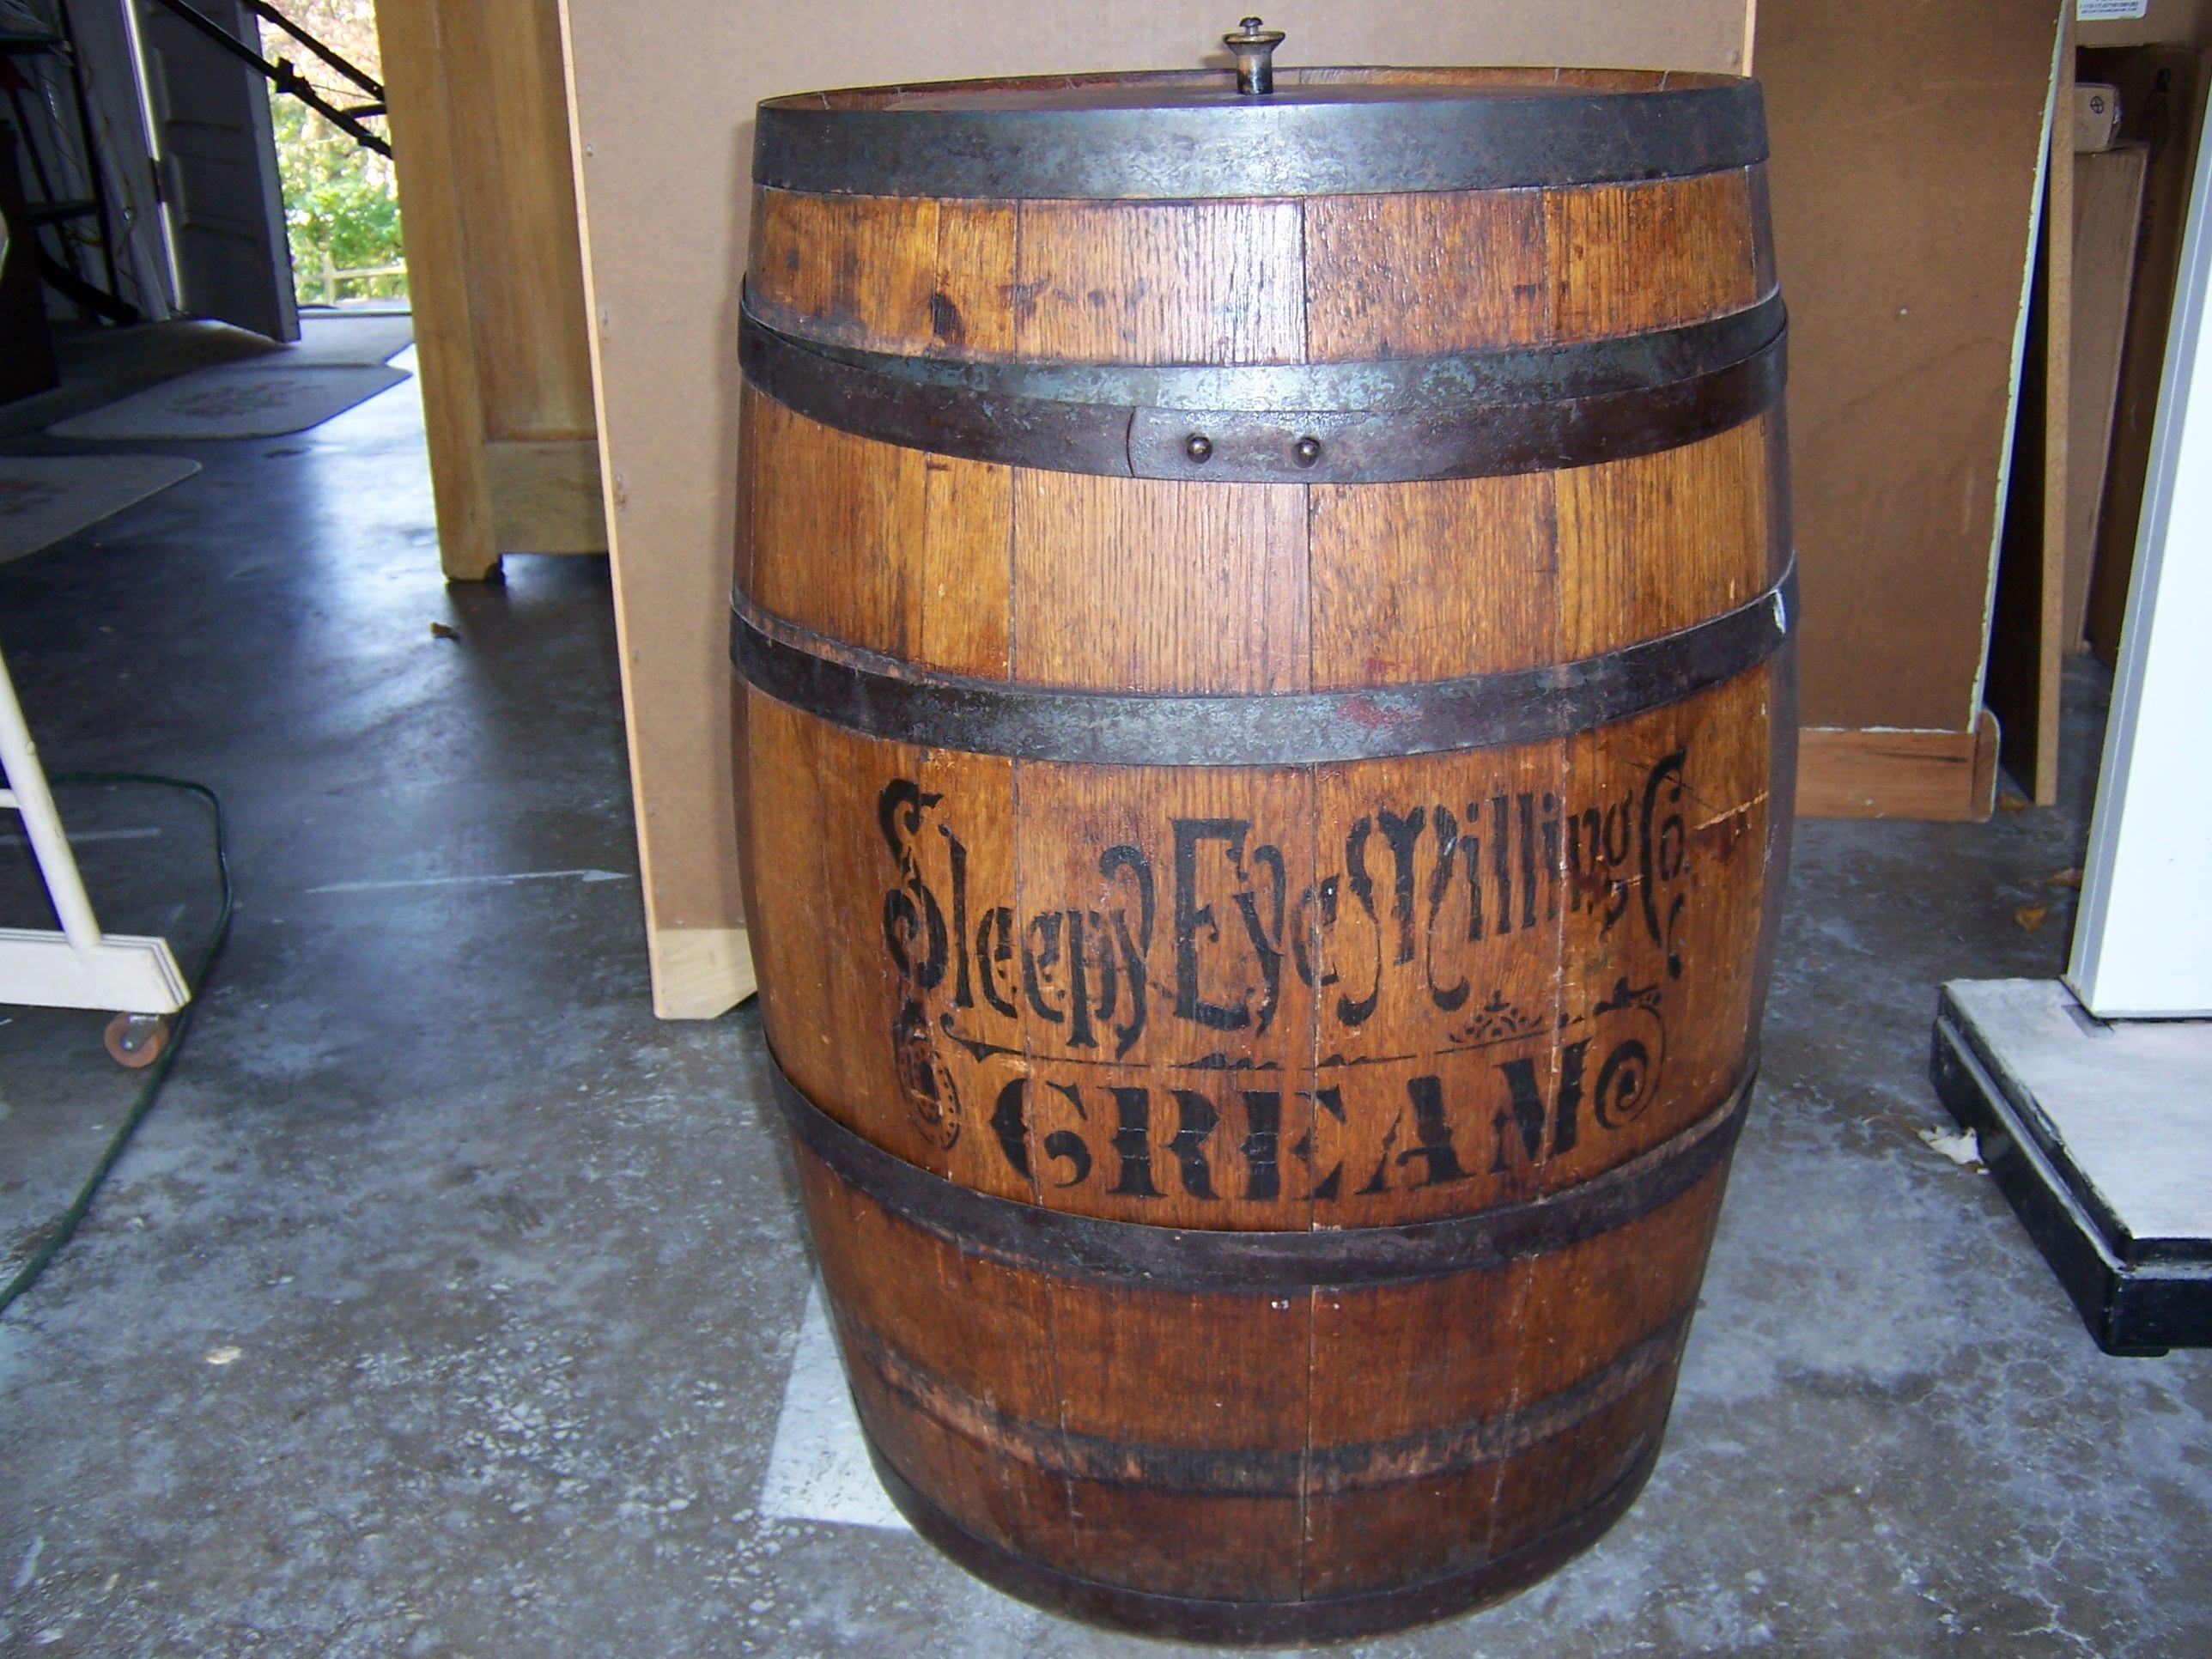 This Large Antique Flour Barrel Is One Of My Favorite Things My In Laws Gave It To Us It Is From Sleepy Eye Minn Sleepy Eye Vintage Kitchenware Antiques